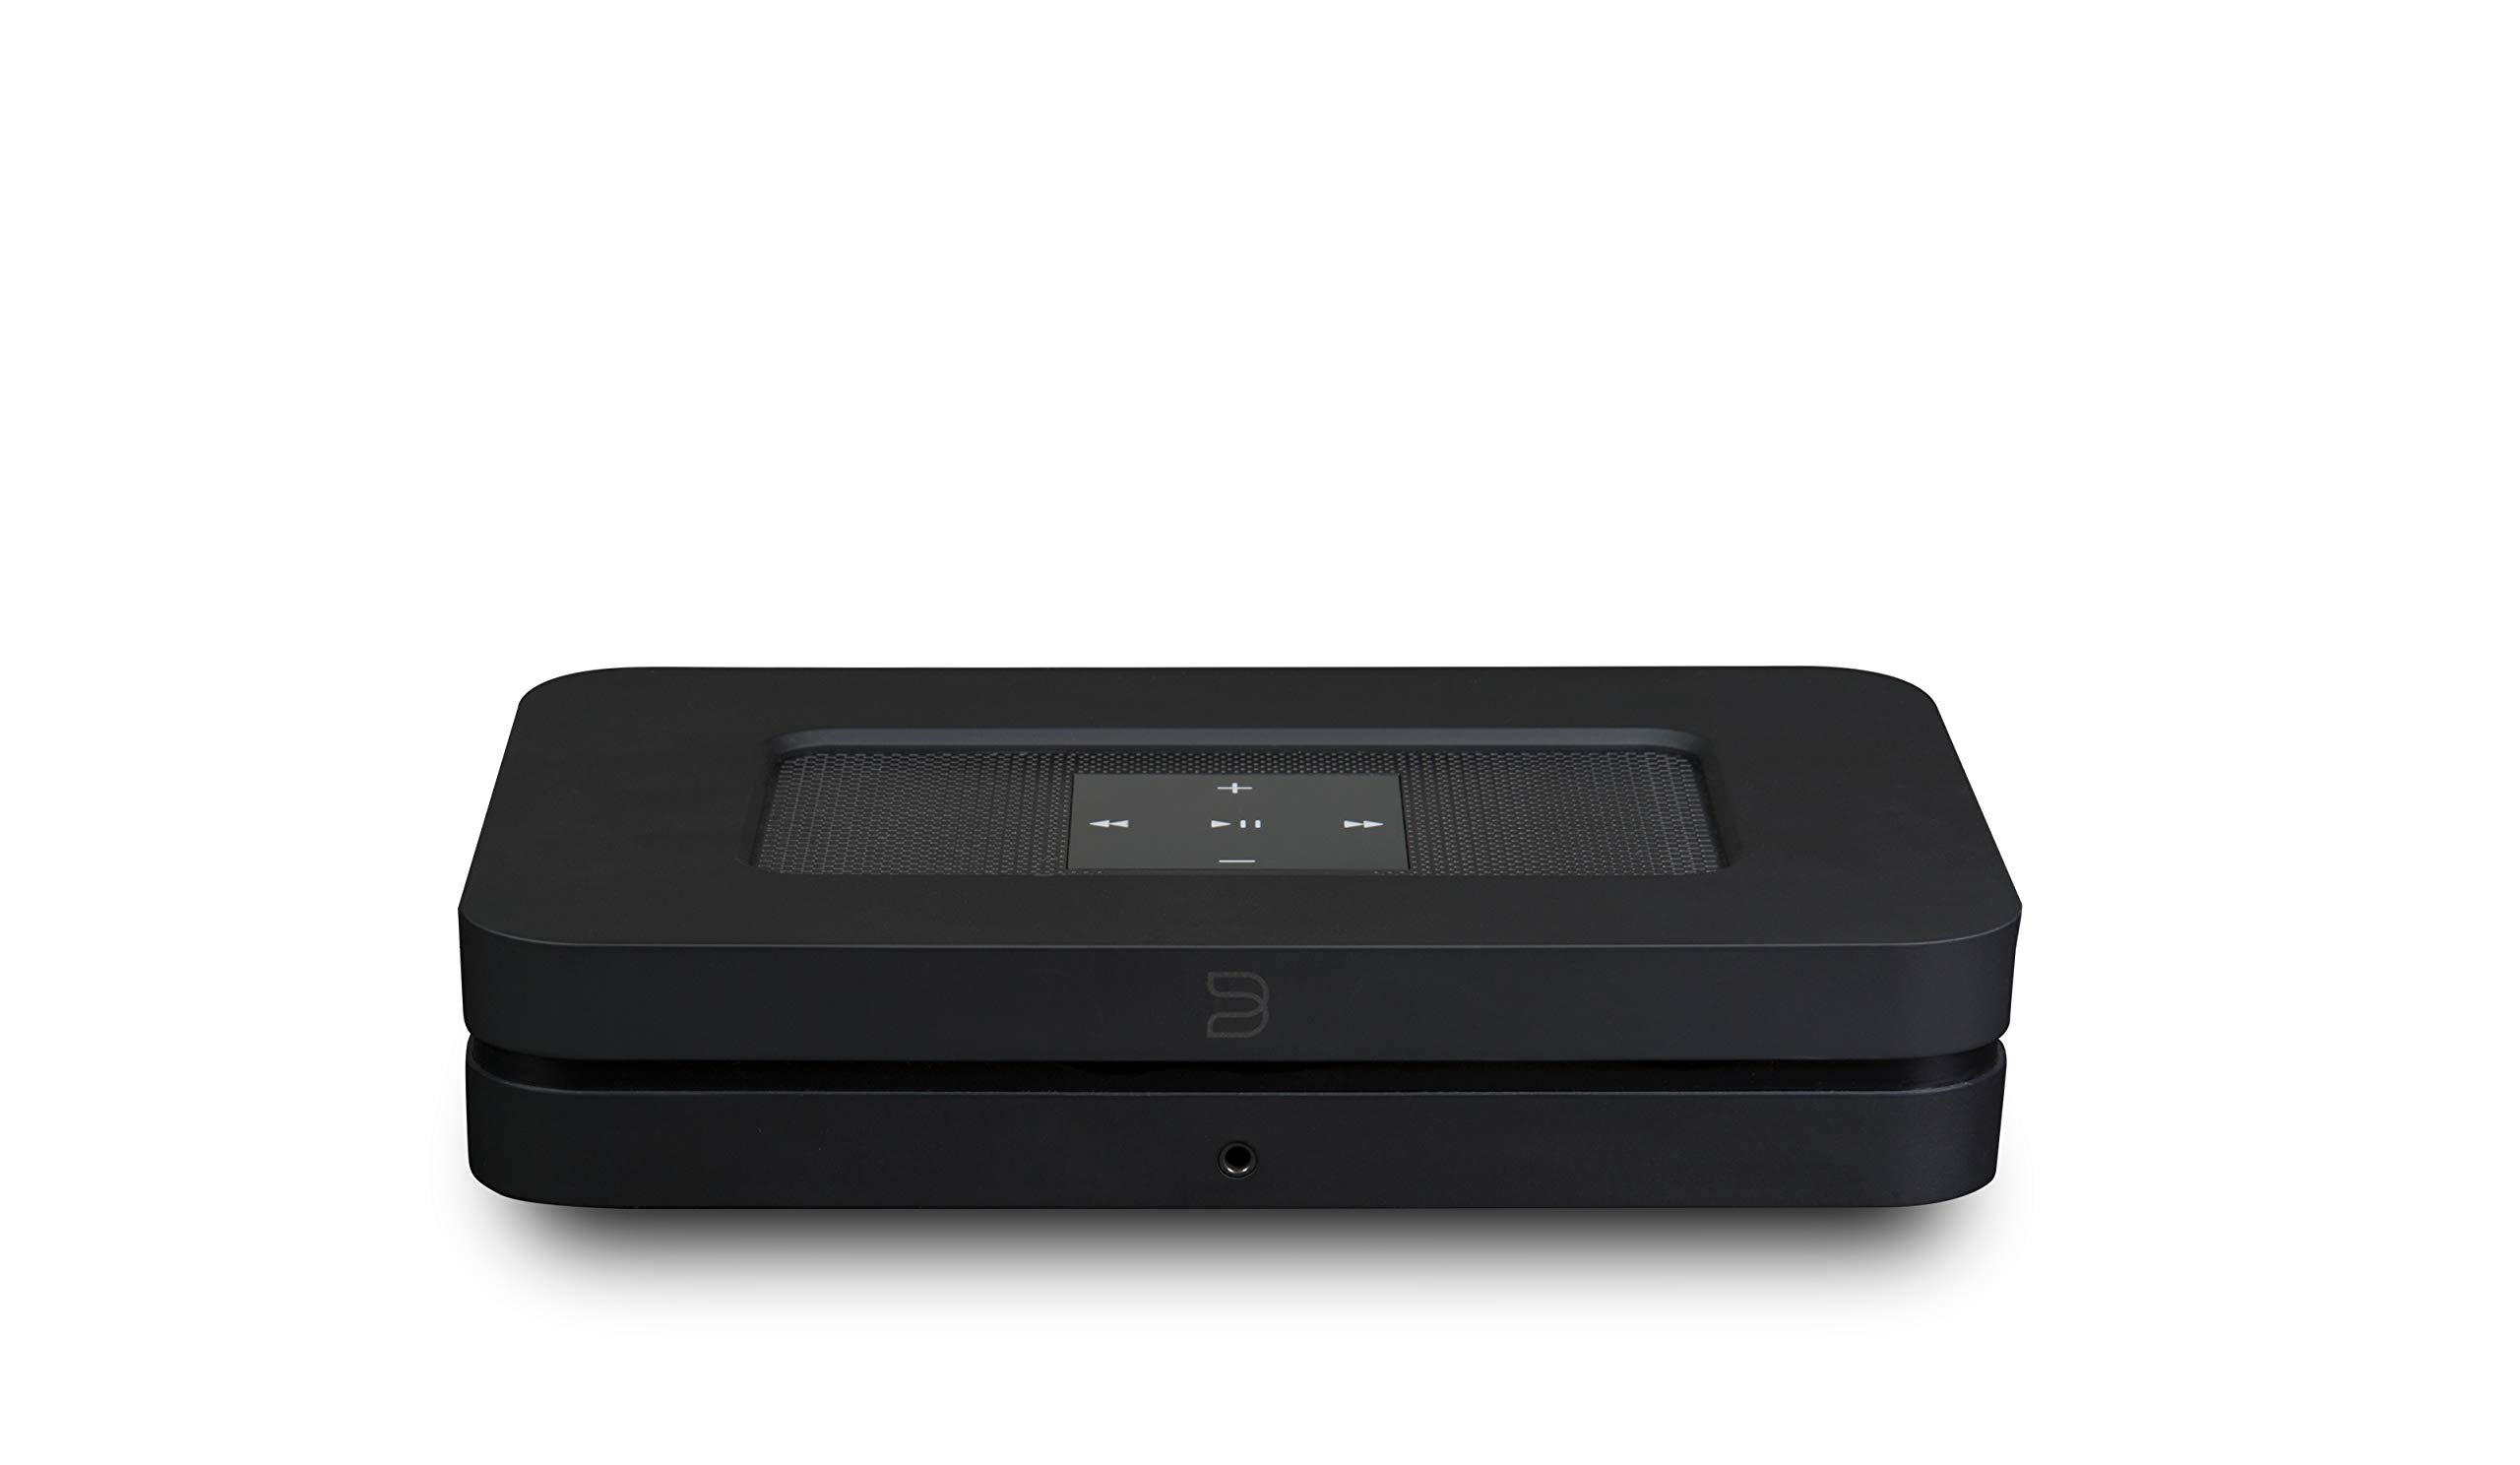 Bluesound Node 2i Wireless Multi-Room Hi-Res Music Streaming Player - Black - Works with Alexa and Siri by Bluesound